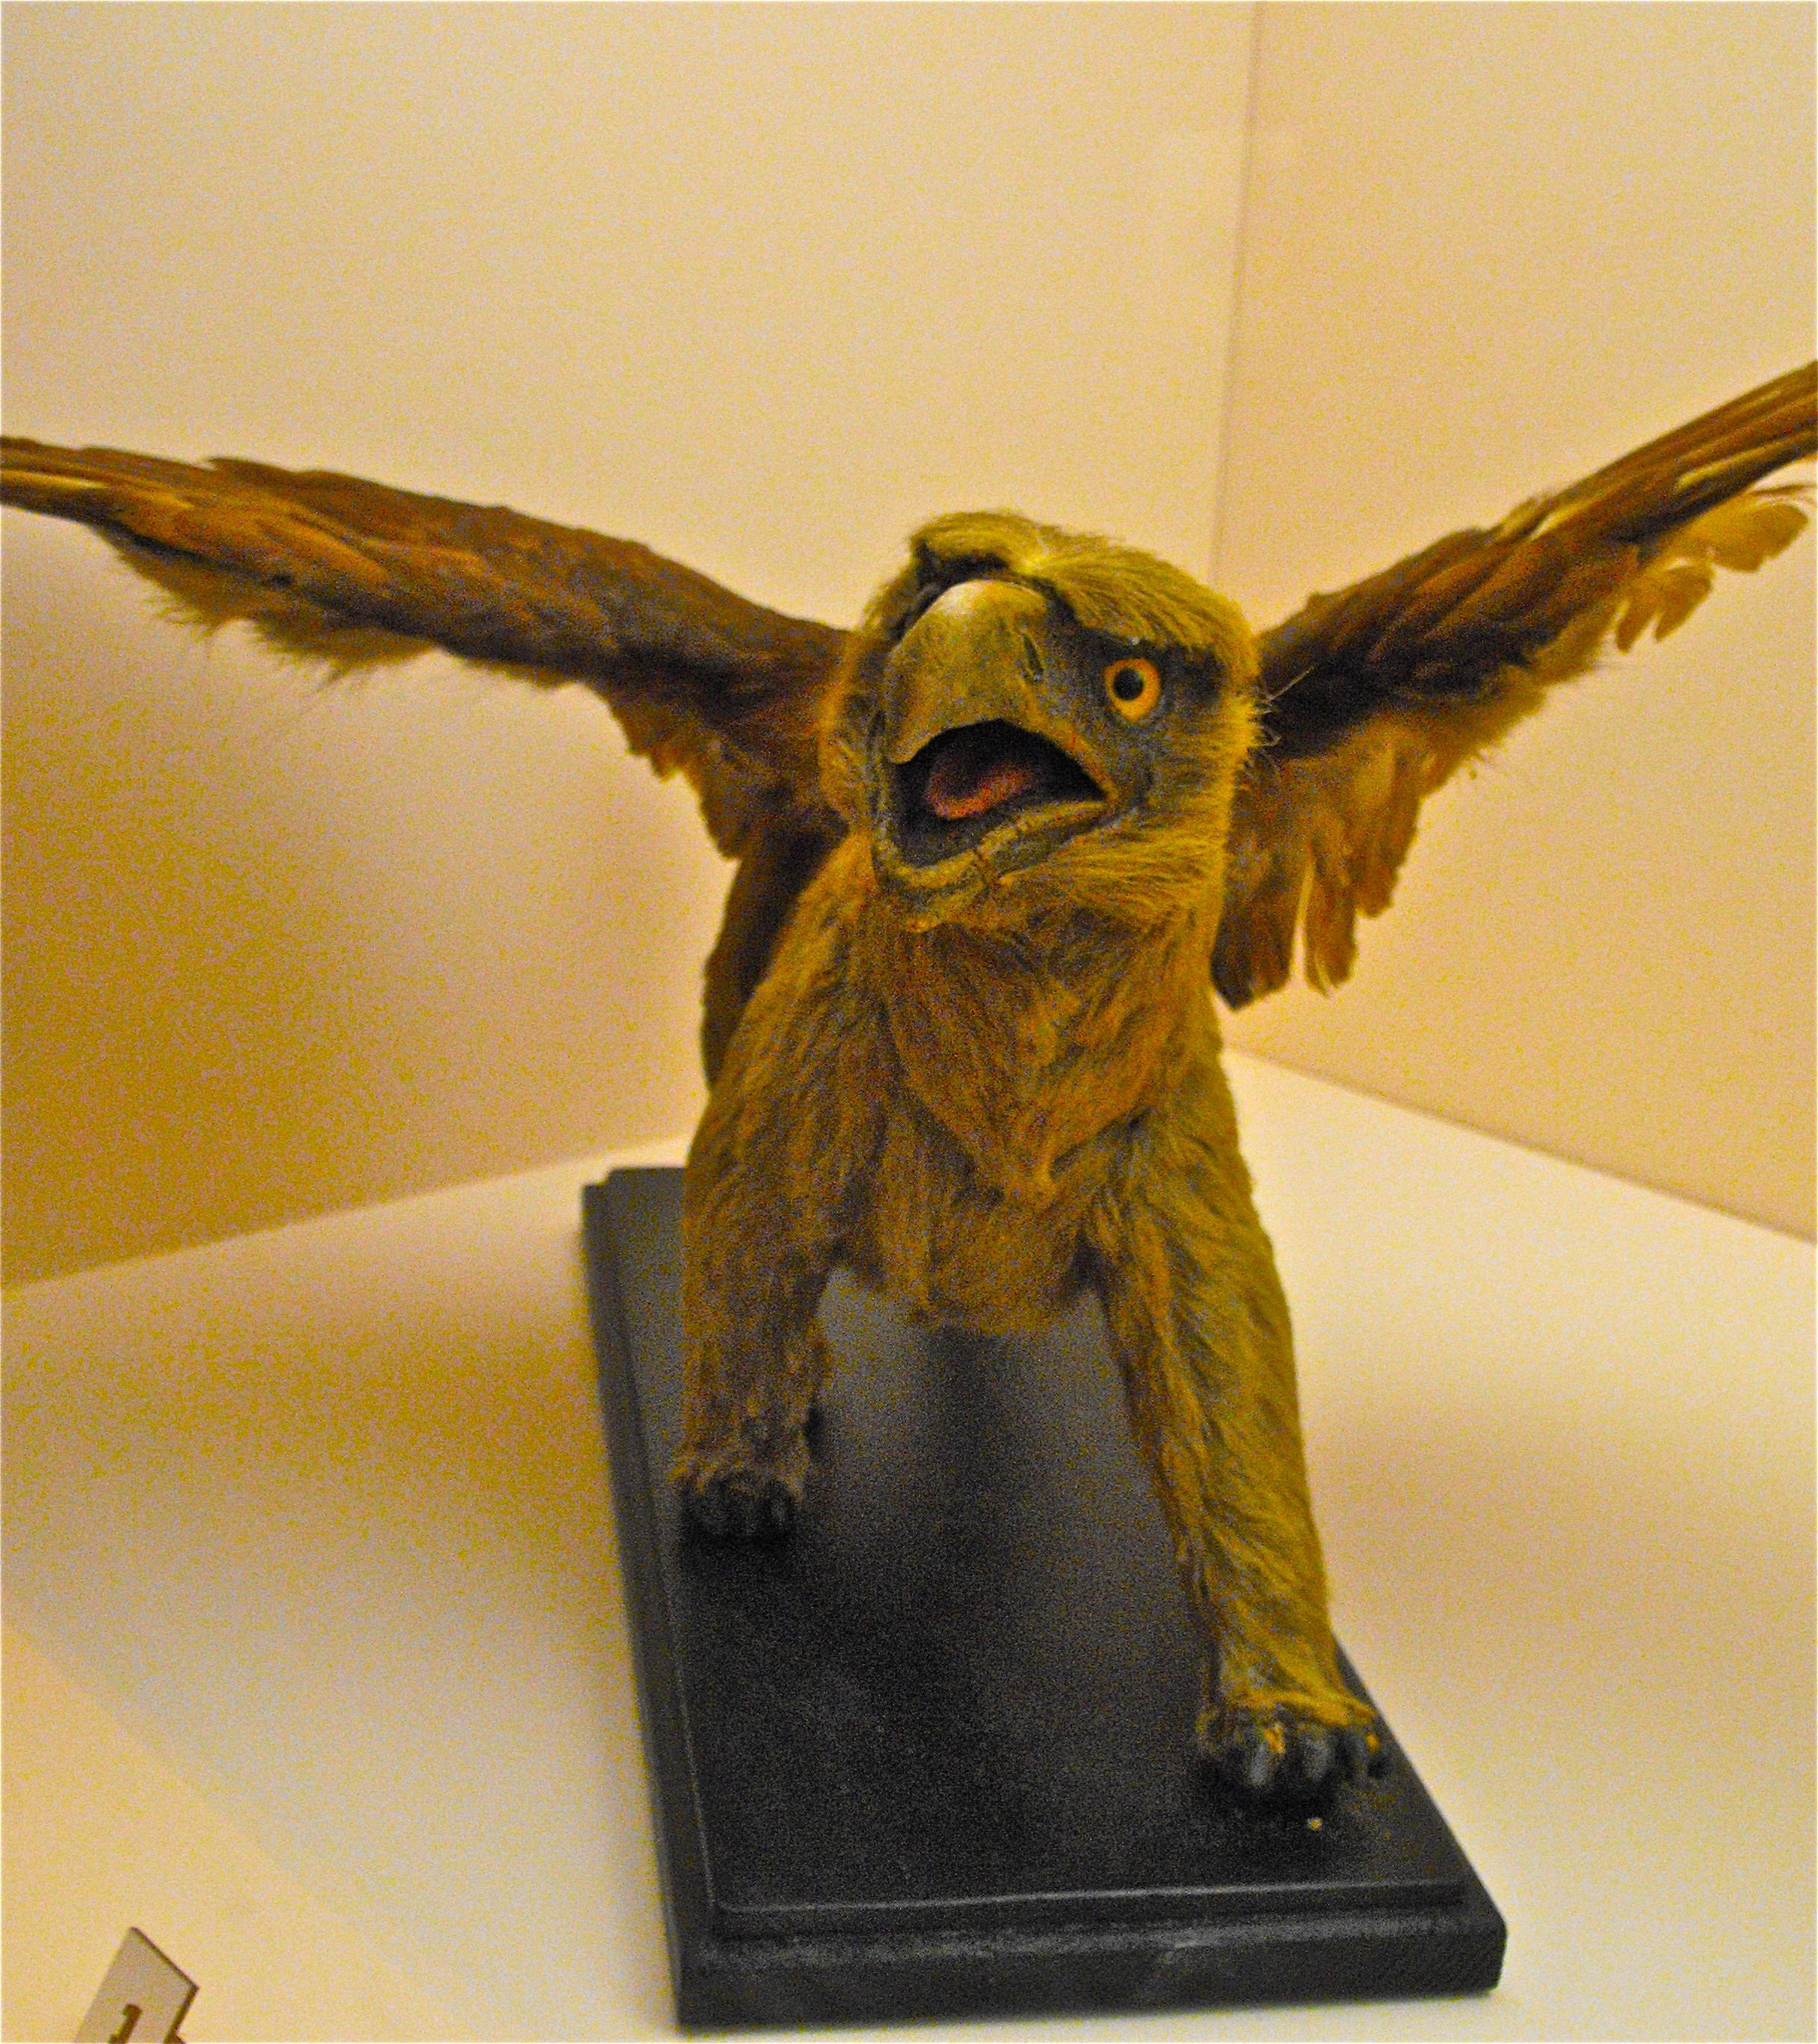 ff99bc7d2be Ray Harryhausen's Gryphon model from THE GOLDEN VOYAGE OF SINBAD ...